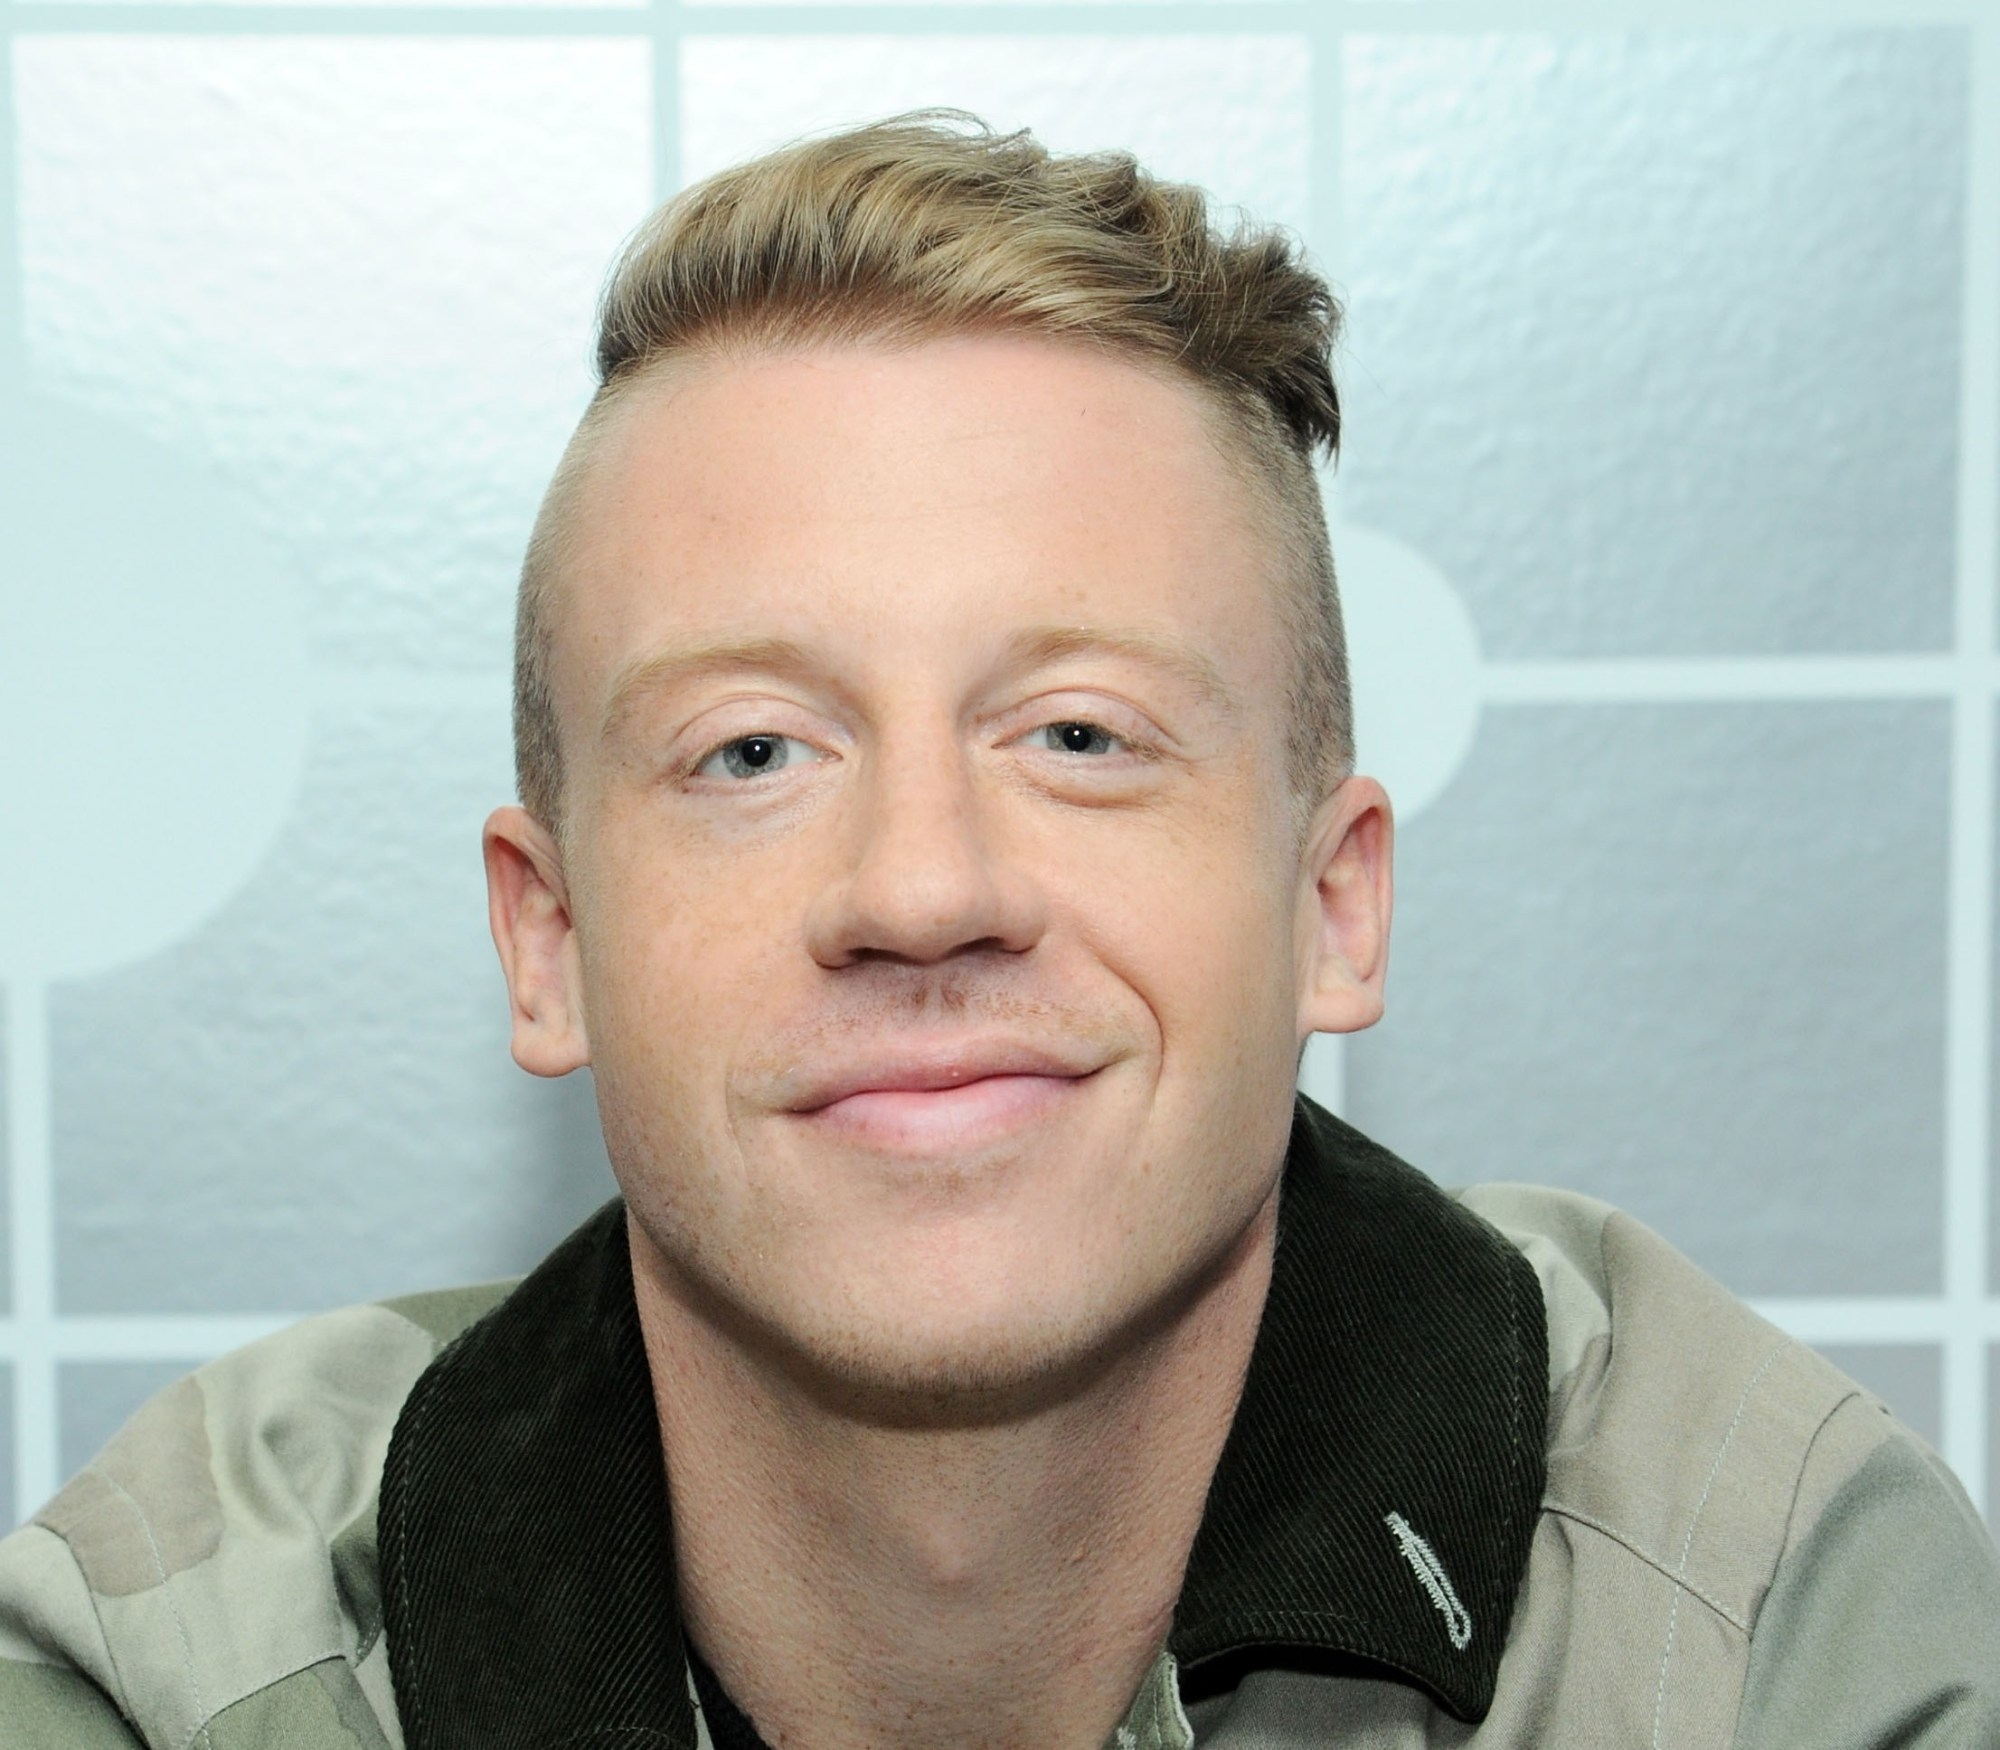 Macklemore Wallpapers High Quality Download Free - Hairstyle Games For Free